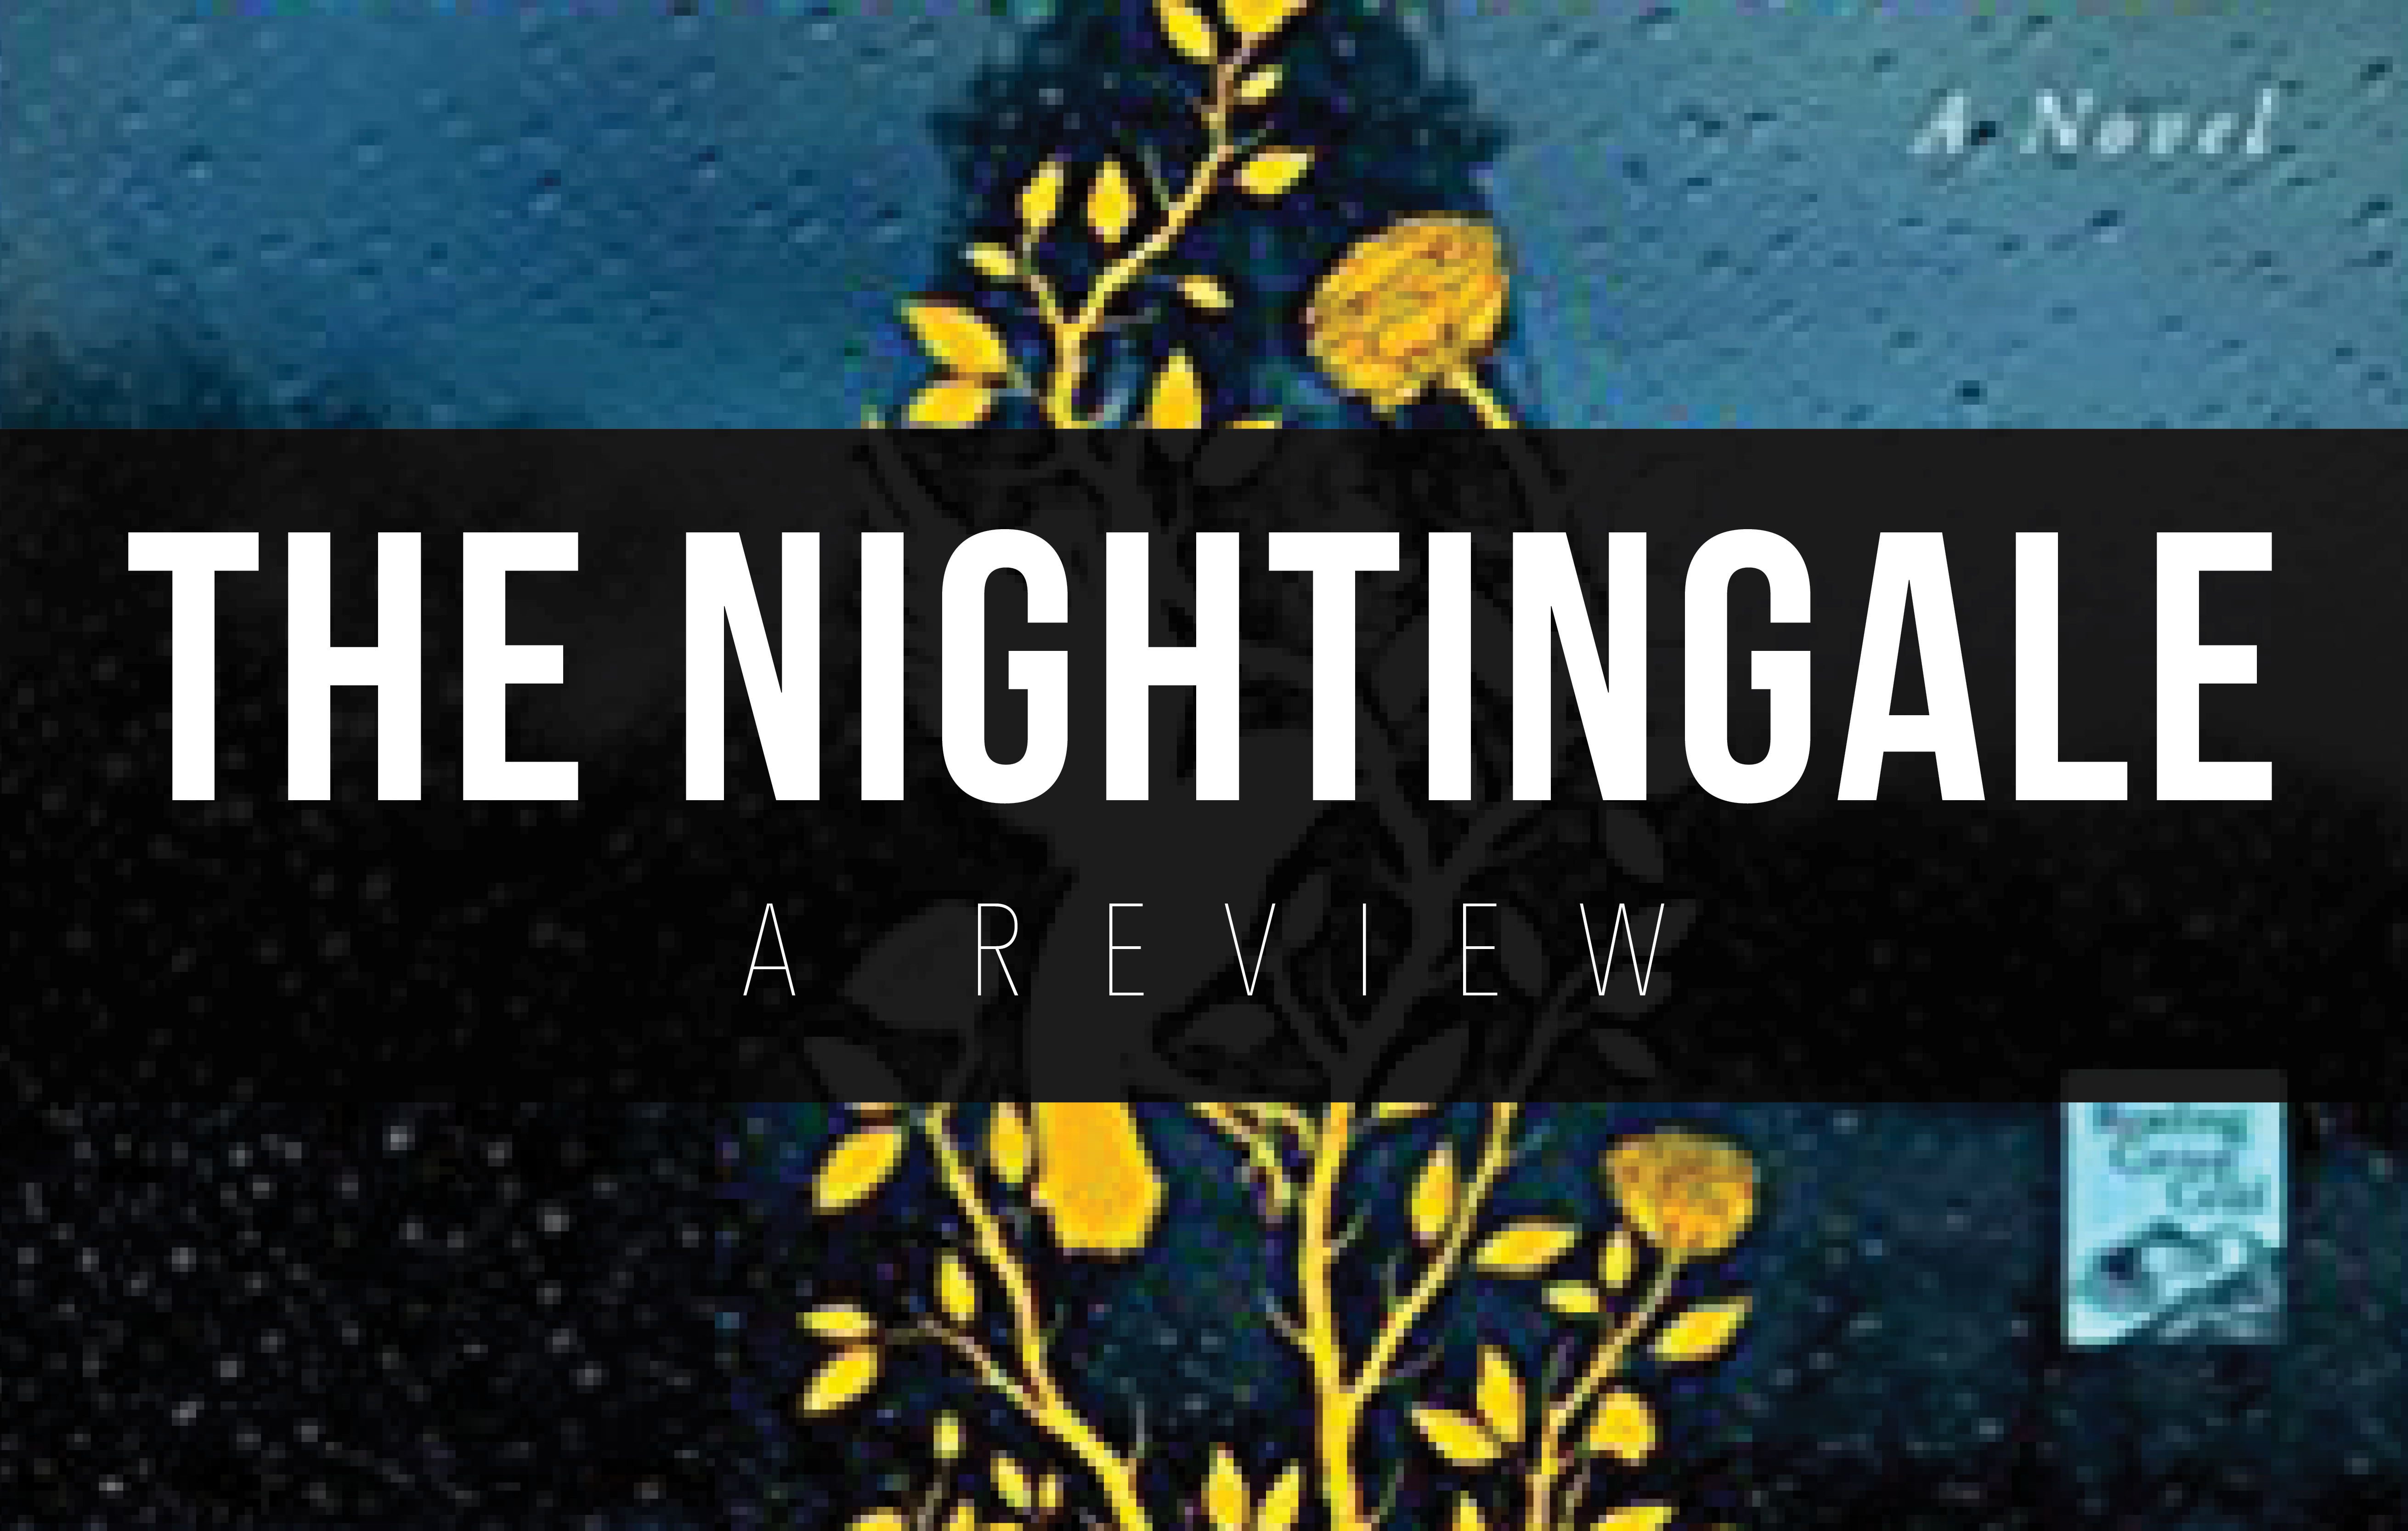 the nightingale a review